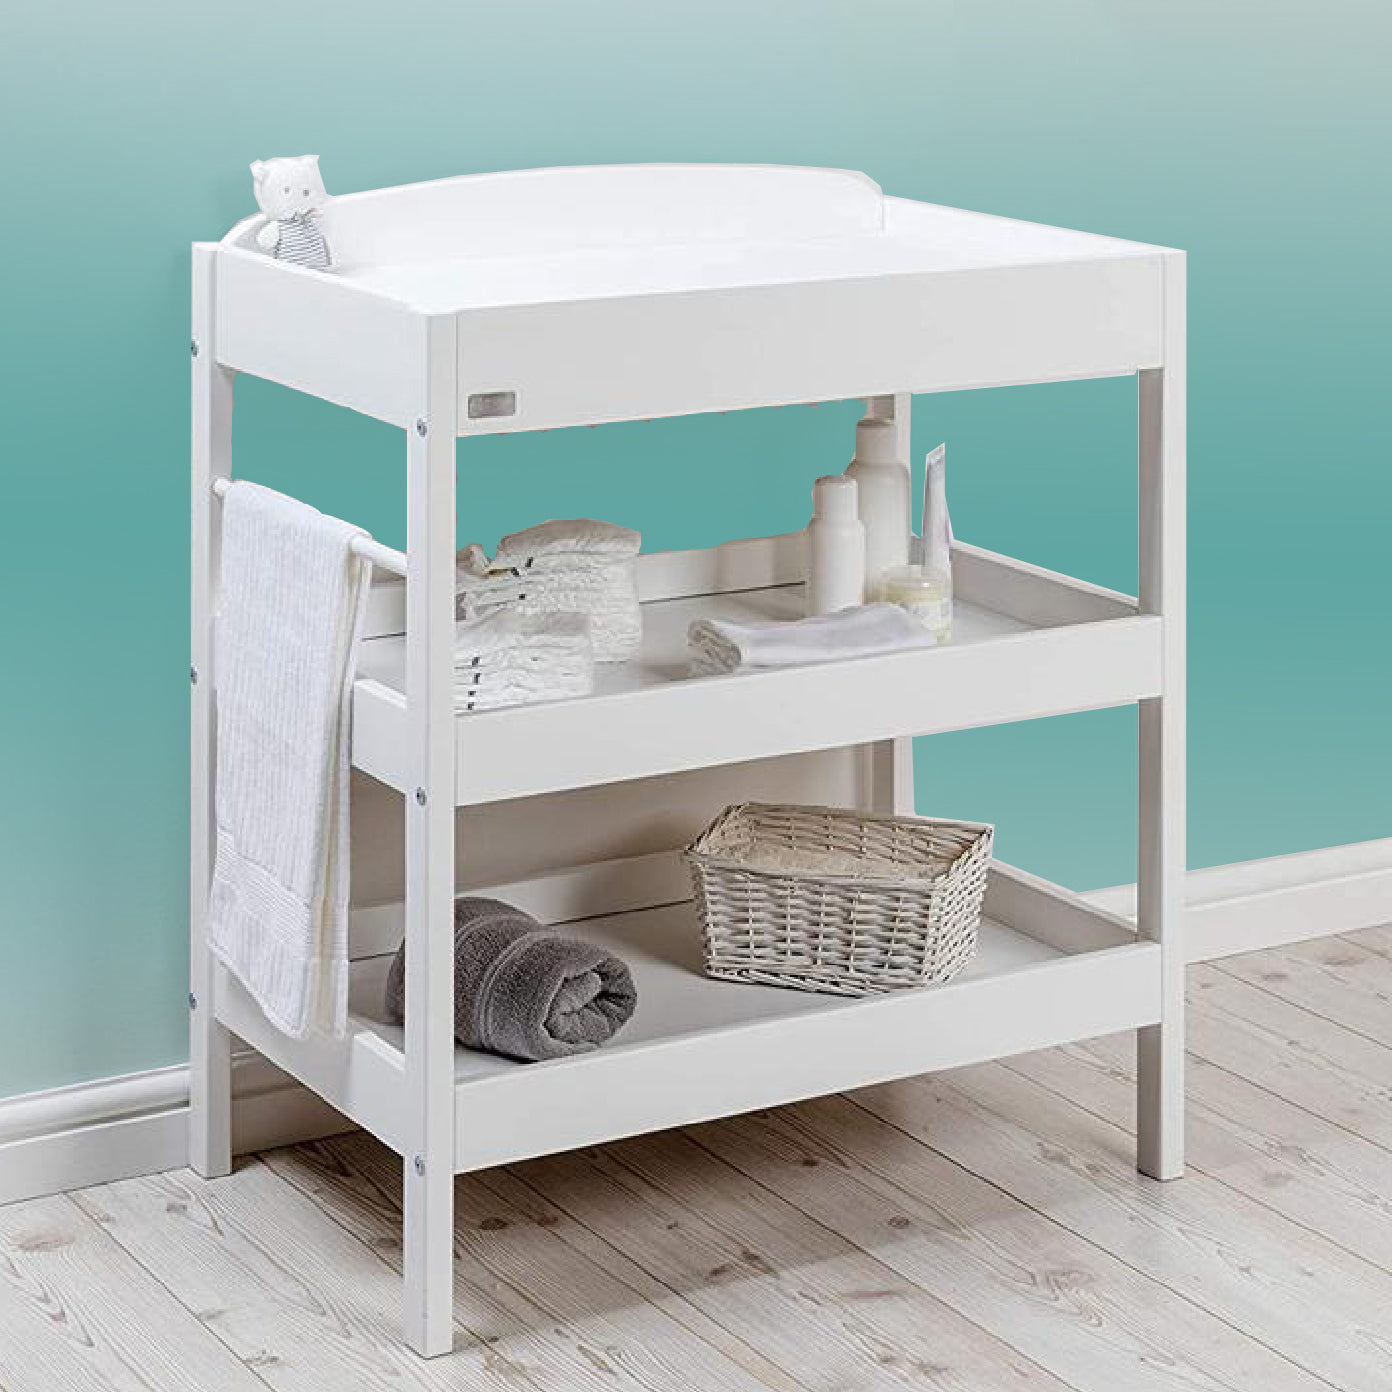 Treasure Wooden Open Baby Changing Unit | Table with Storage | White – www.littlehelper.co.uk